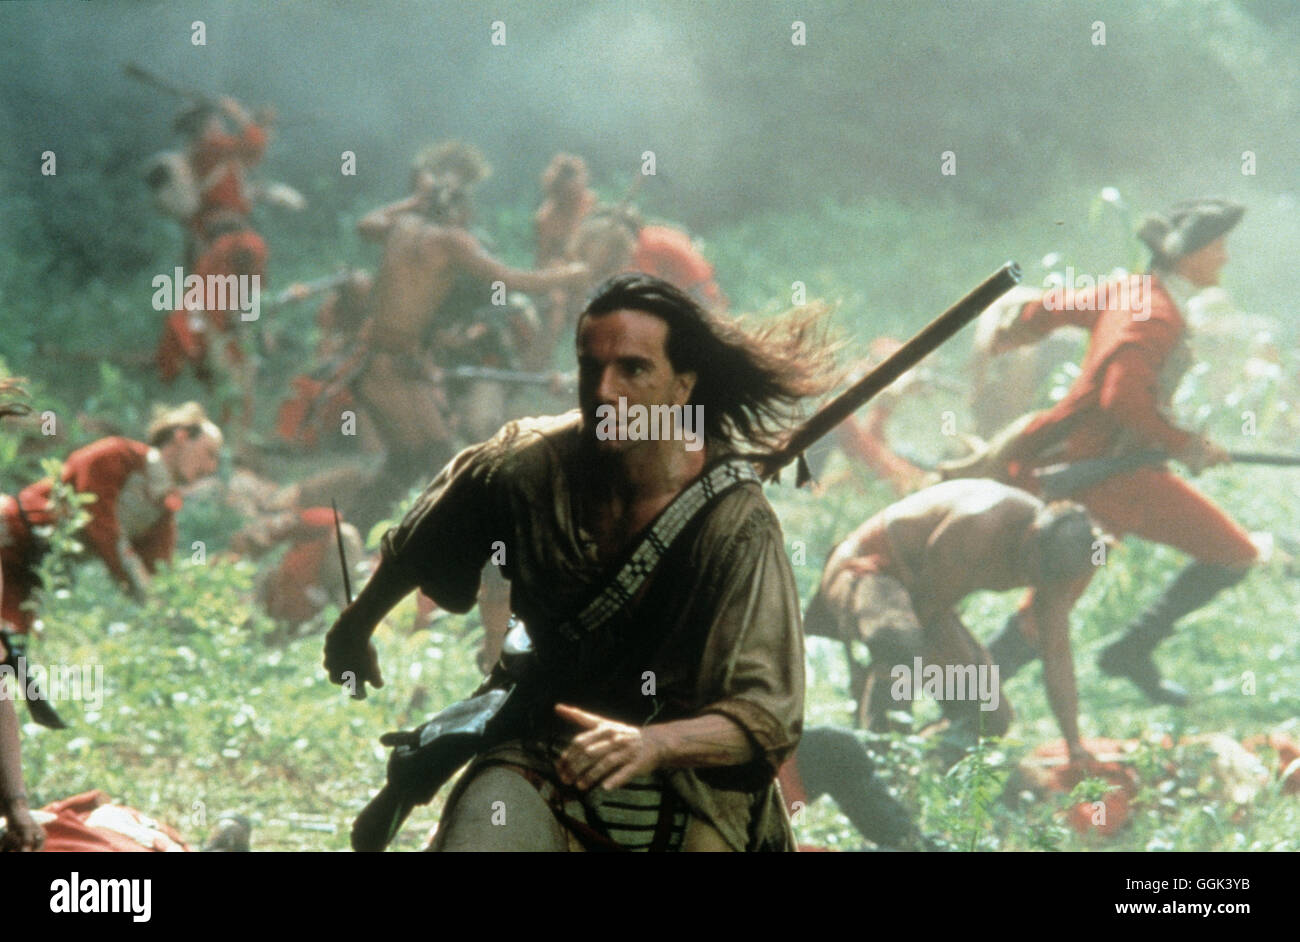 Last Of The Mohicans Film High Resolution Stock Photography And Images Alamy Jodhi may, eric schweig, daniel day lewis, russell means, madeleine stowe. https www alamy com stock photo der letzte mohikaner the last of the mohicans usa 1992 michael mann 113516911 html